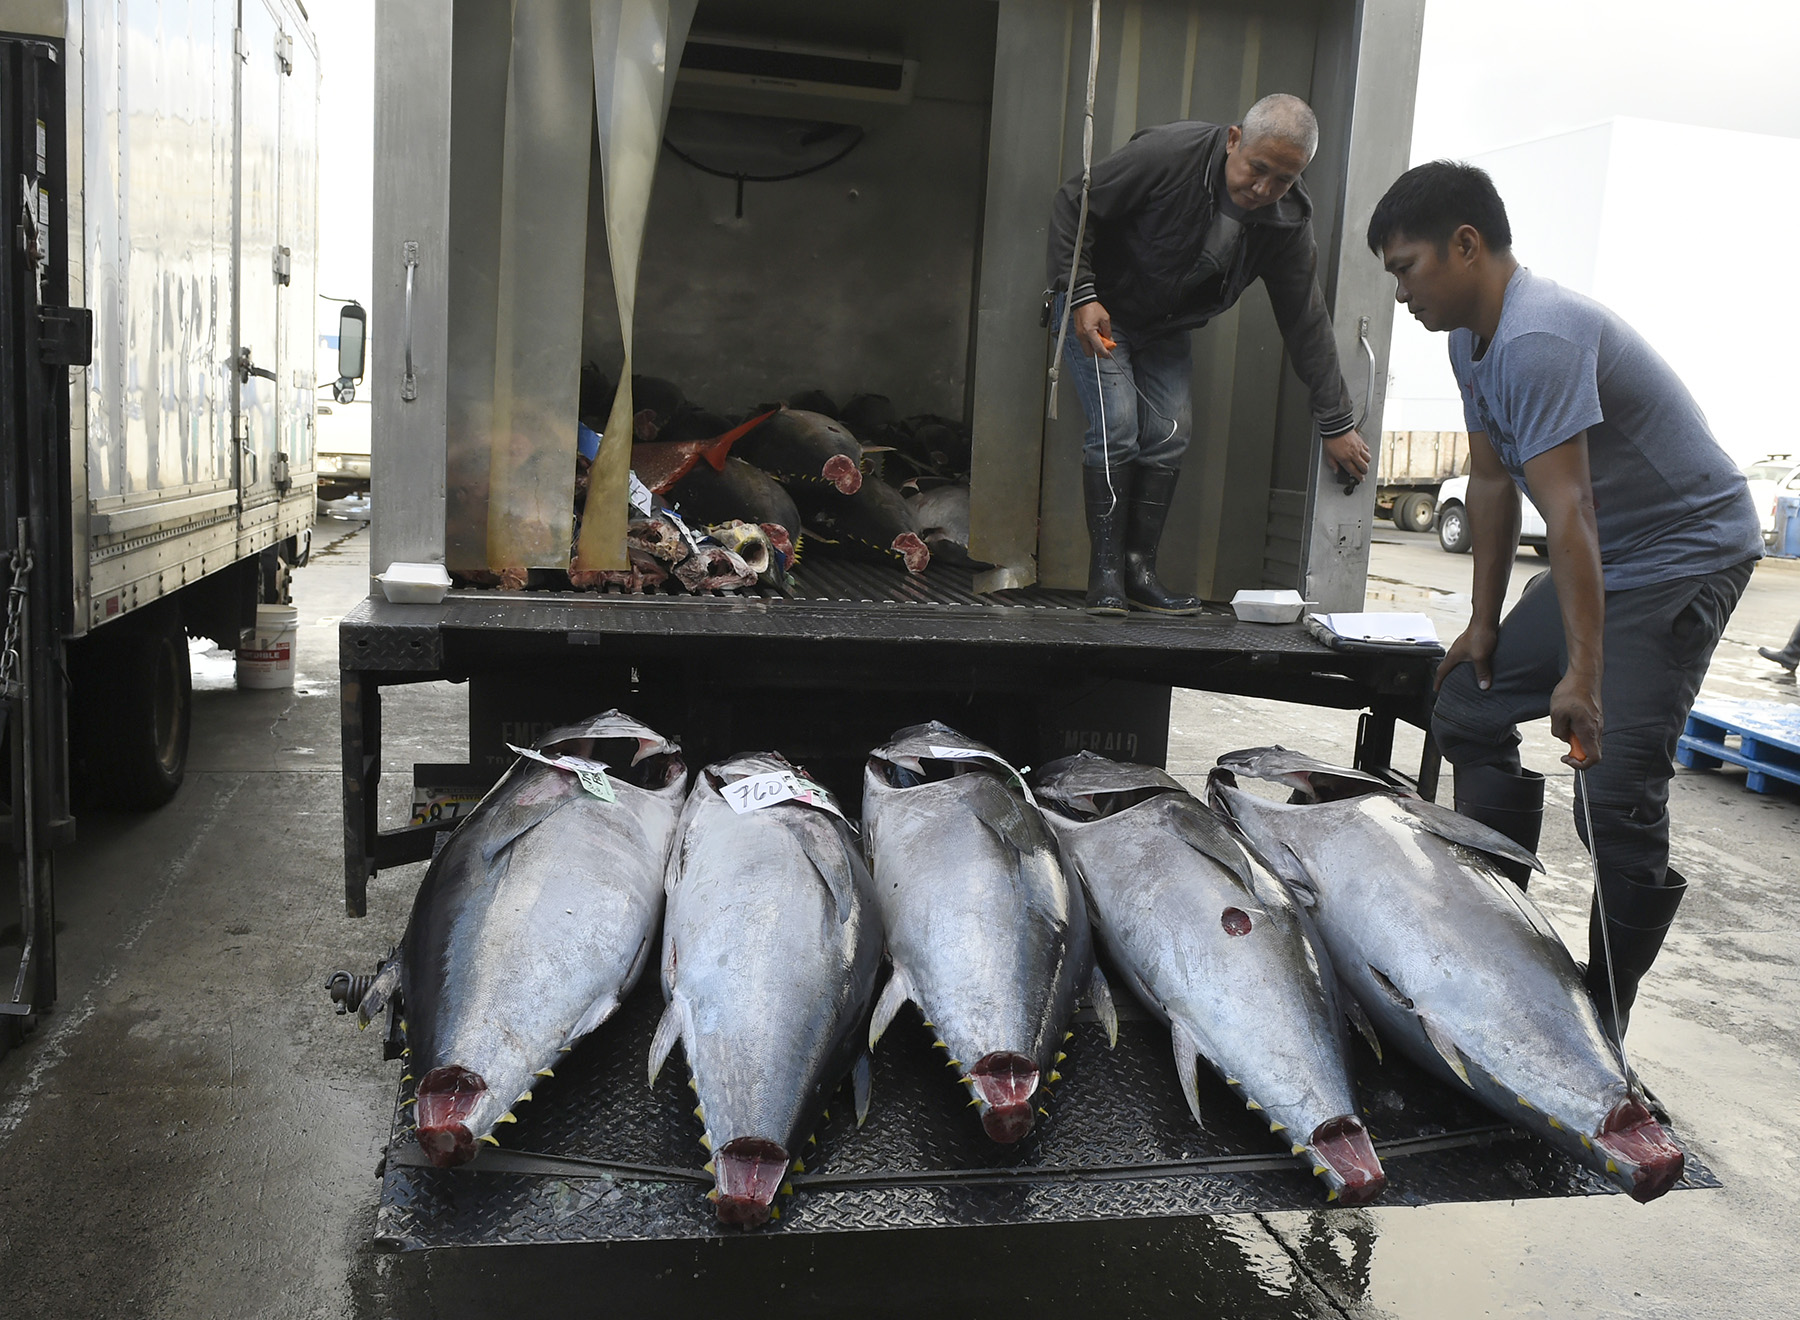 <p>The ahi journey continues as fish just sold at auction are loaded into trucks for transport to their final destinations.</p>